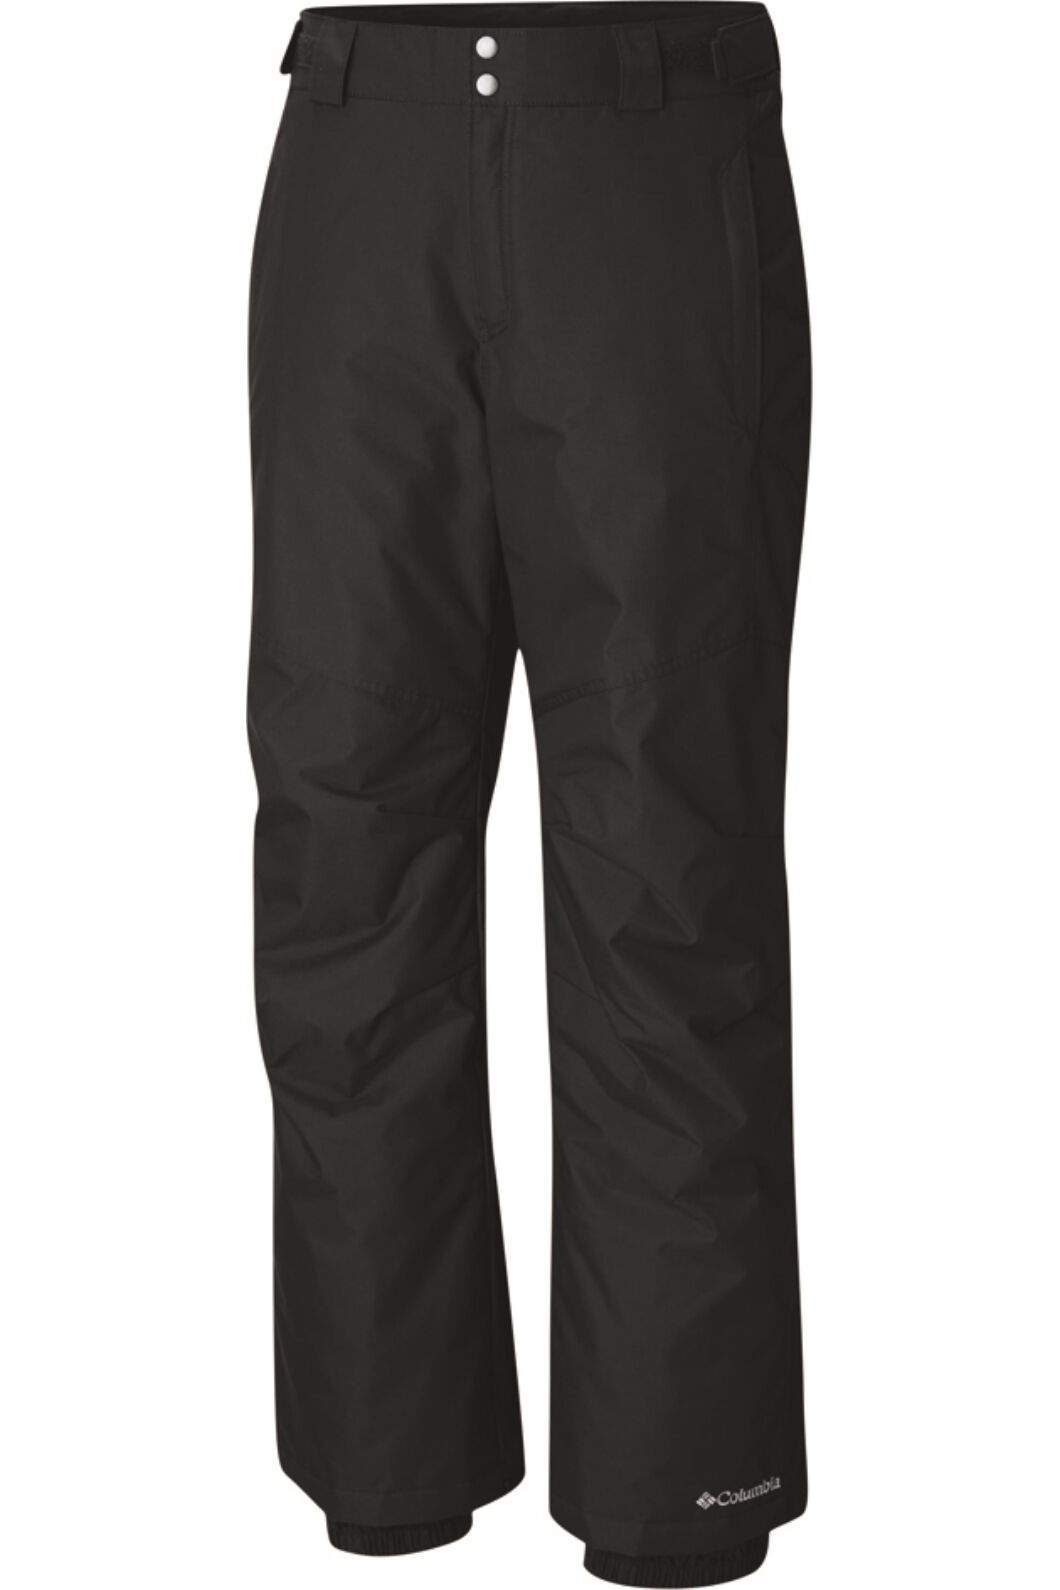 Columbia Men's Bugaboo II Pant, Black, hi-res